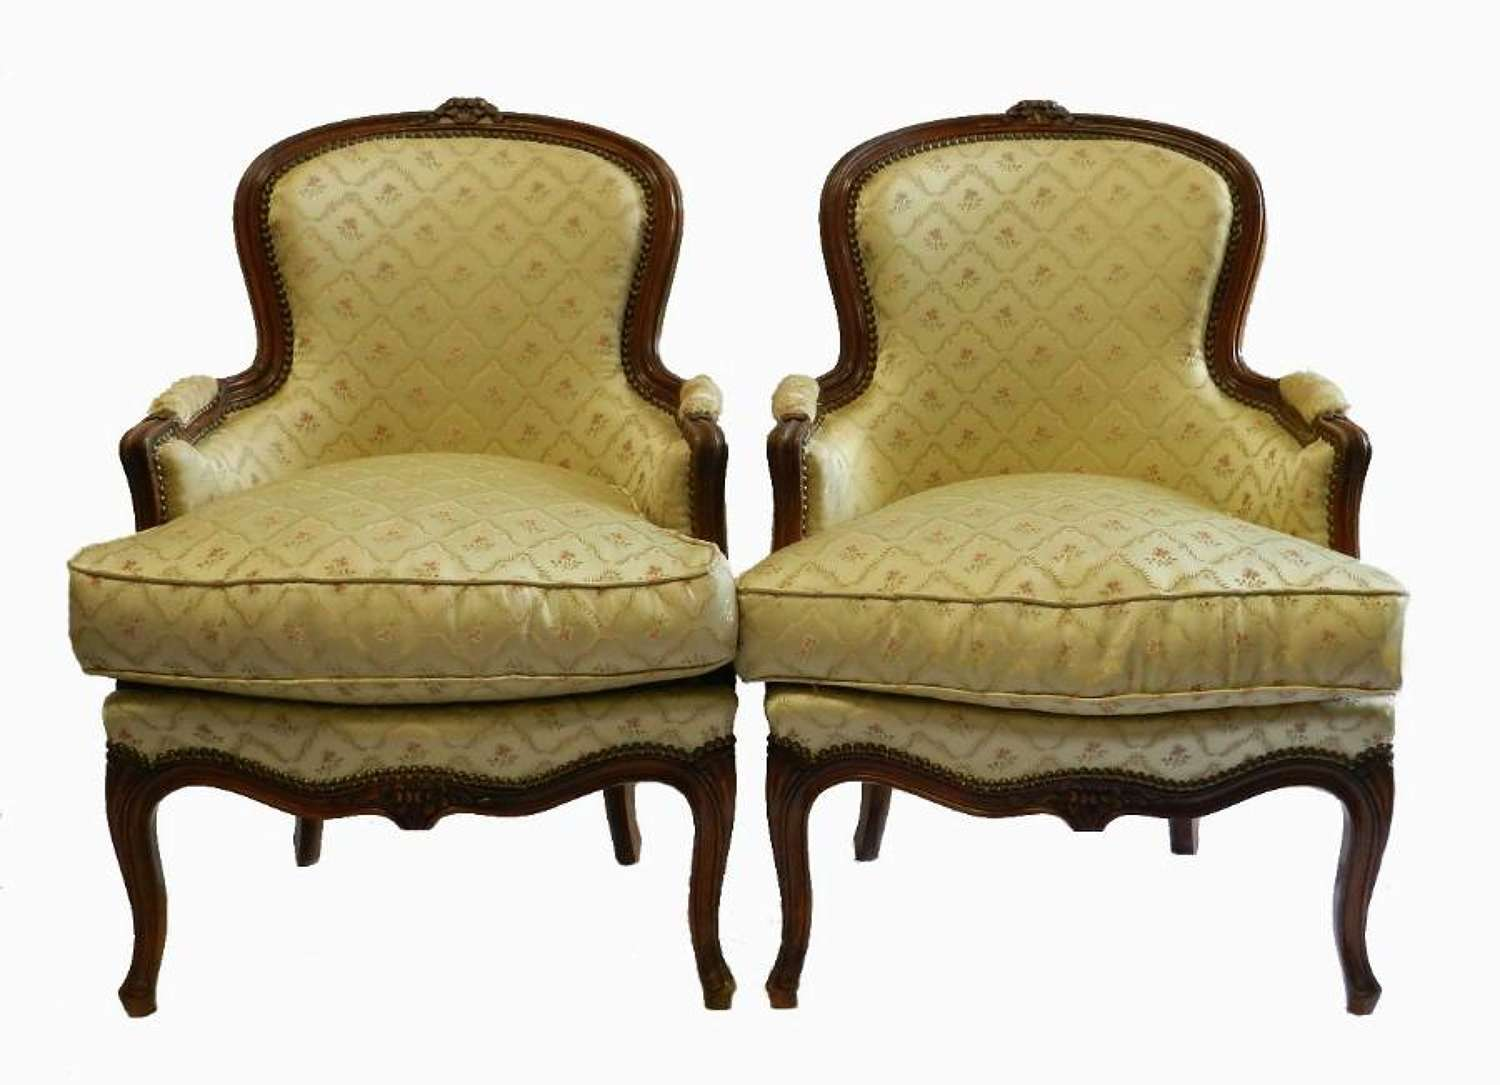 Pair of French Bergere Armchairs early C20 Louis